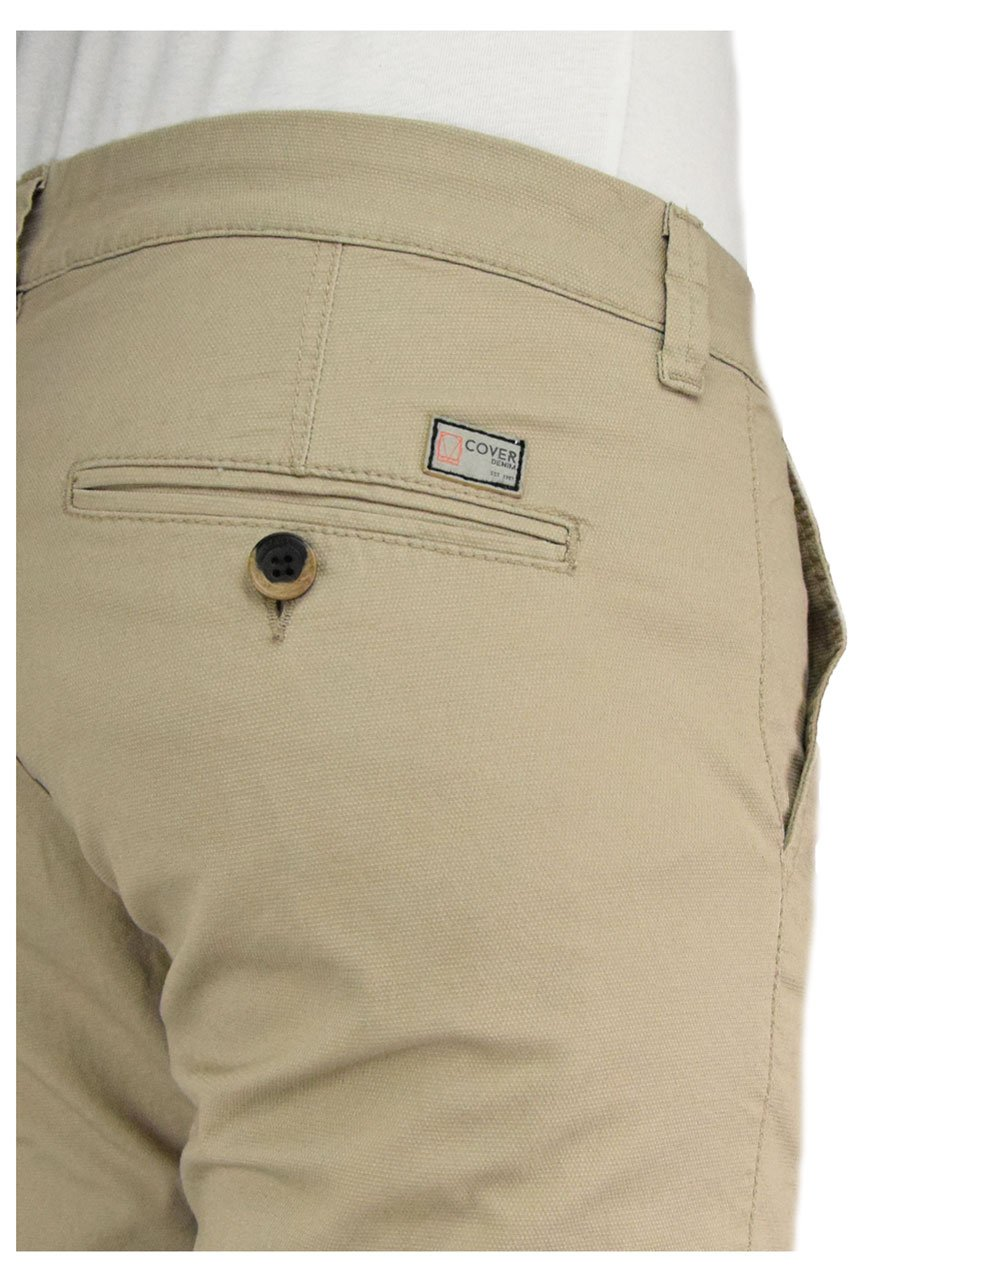 Cover Chilly Skinny (M0073) Beige